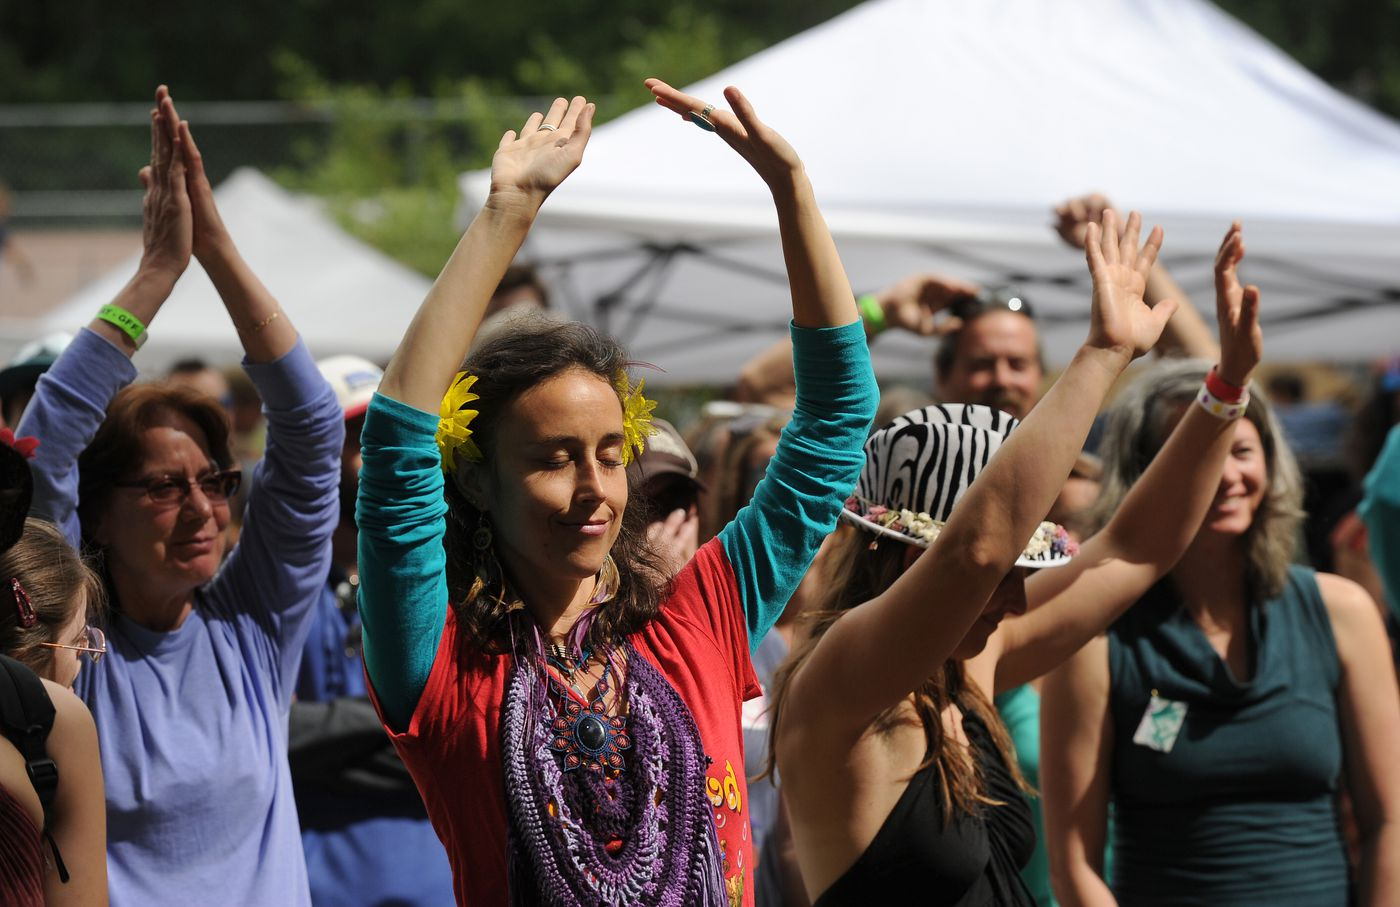 Joleen Decker and others groove to the music of the Hope Social Club at the Girdwood Forest Fair on Saturday, July 2, 2016, in Girdwood. (Bob Hallinen / Alaska Dispatch News)